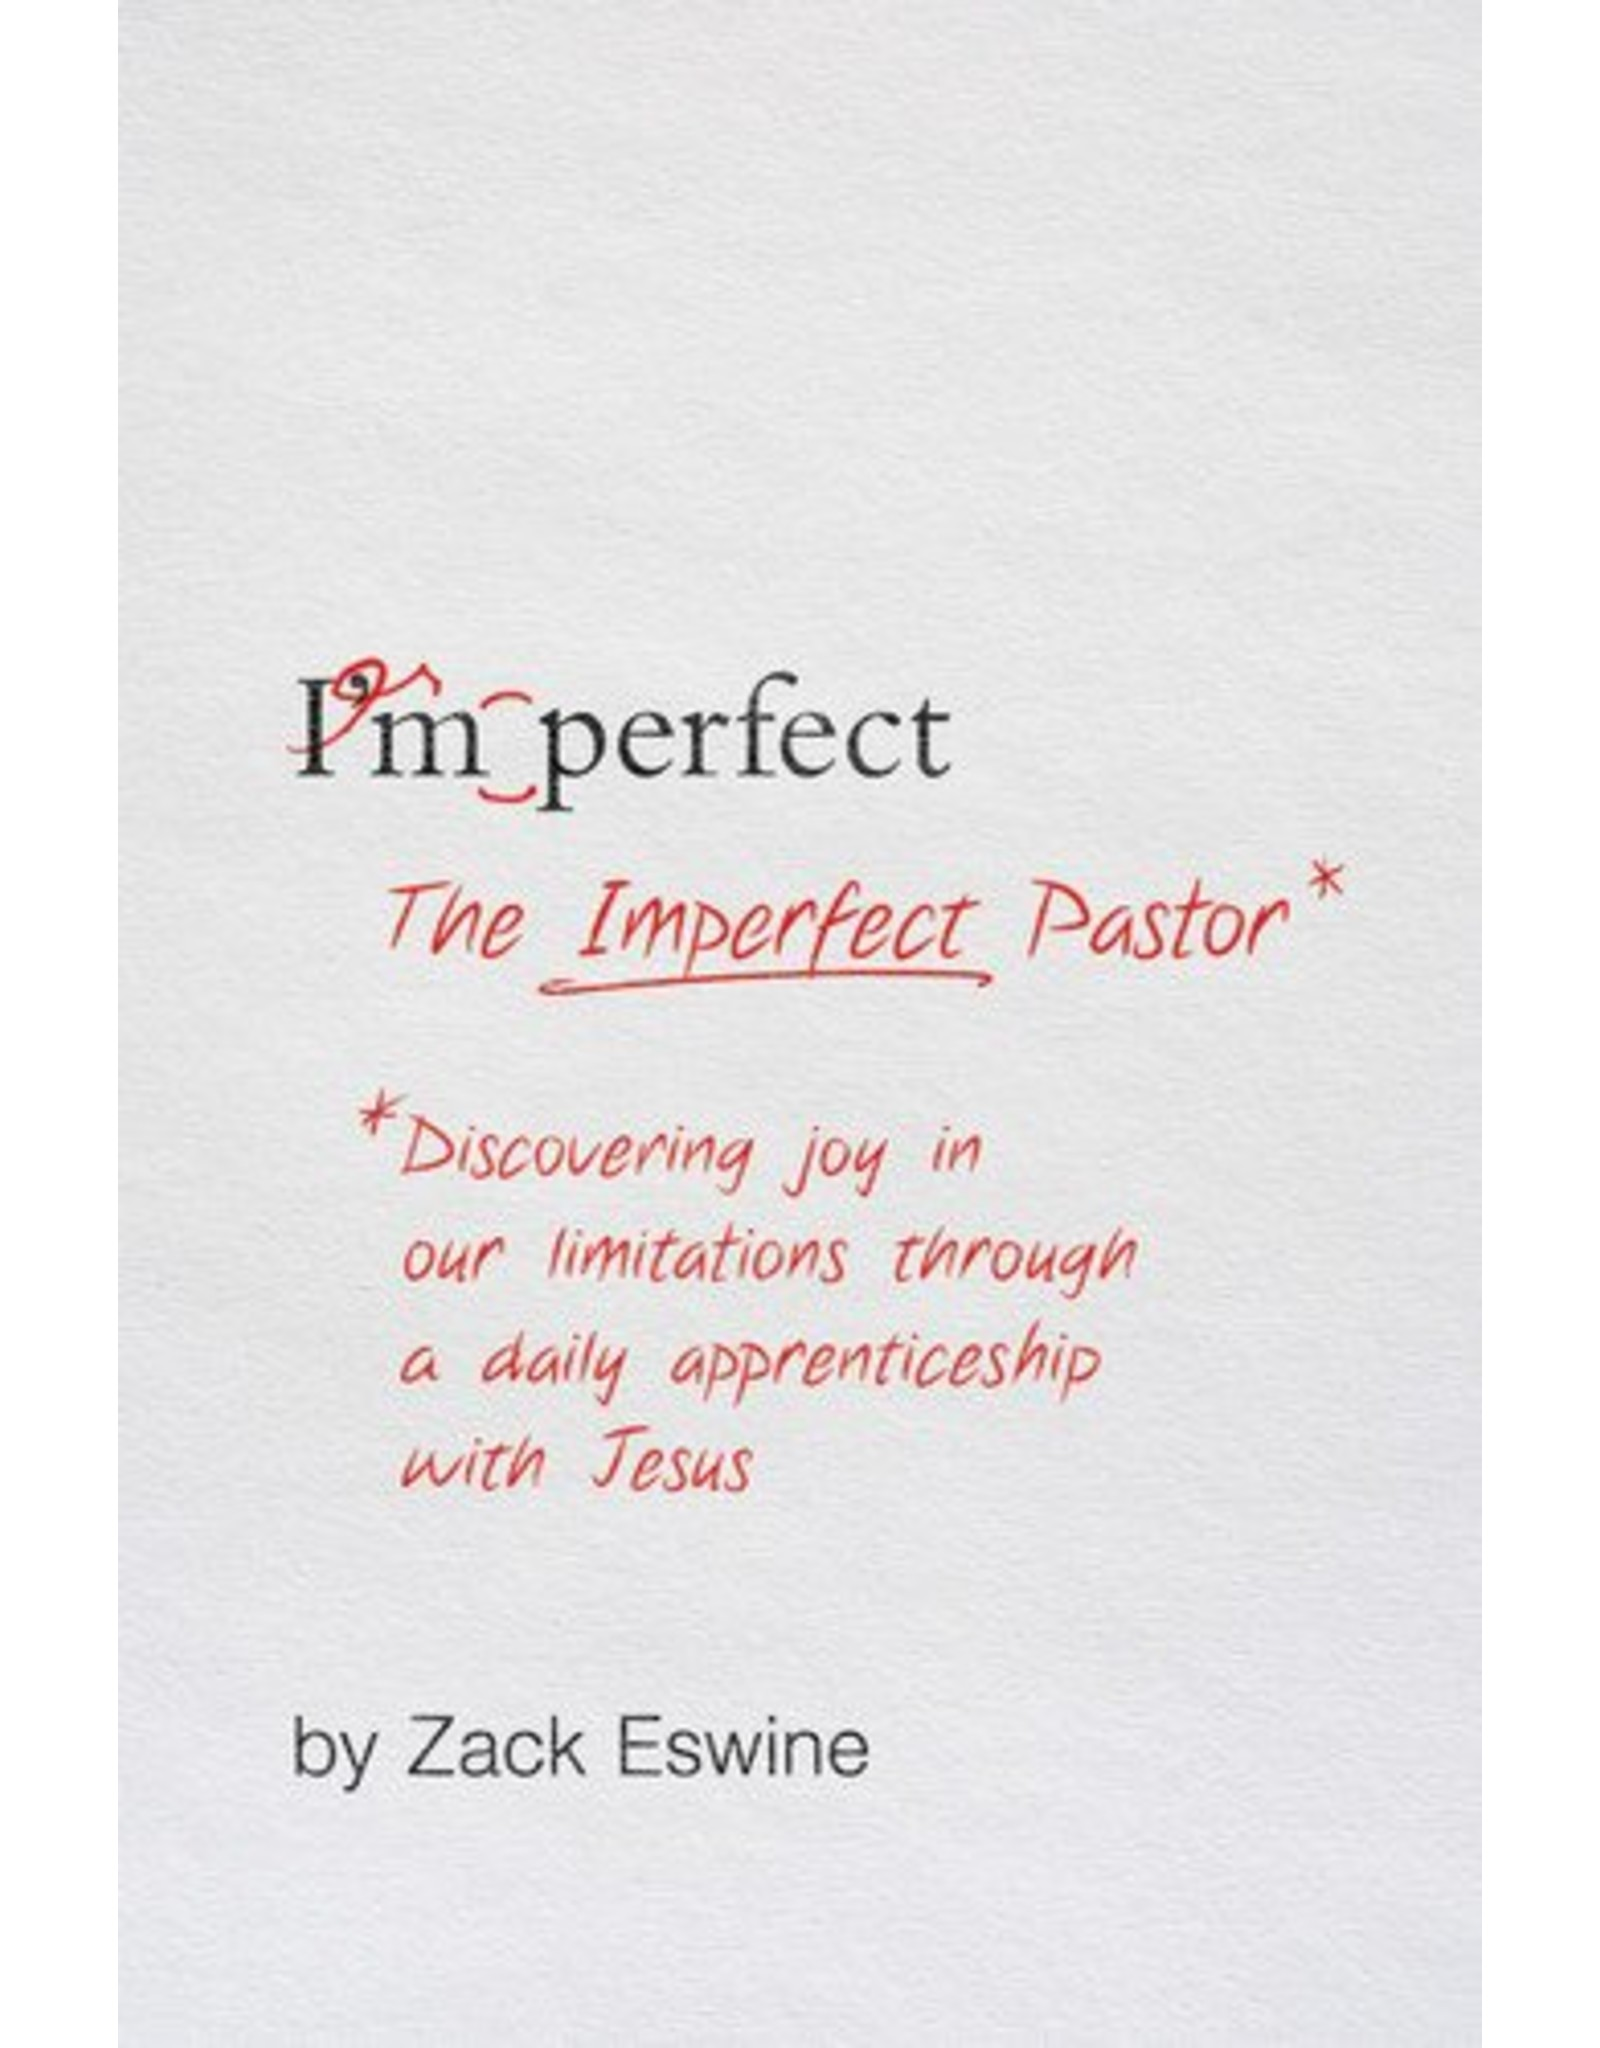 Crossway / Good News The Imperfect Pastor: Discovering Joy in Our Limitations through a Daily Apprenticeship with Jesus